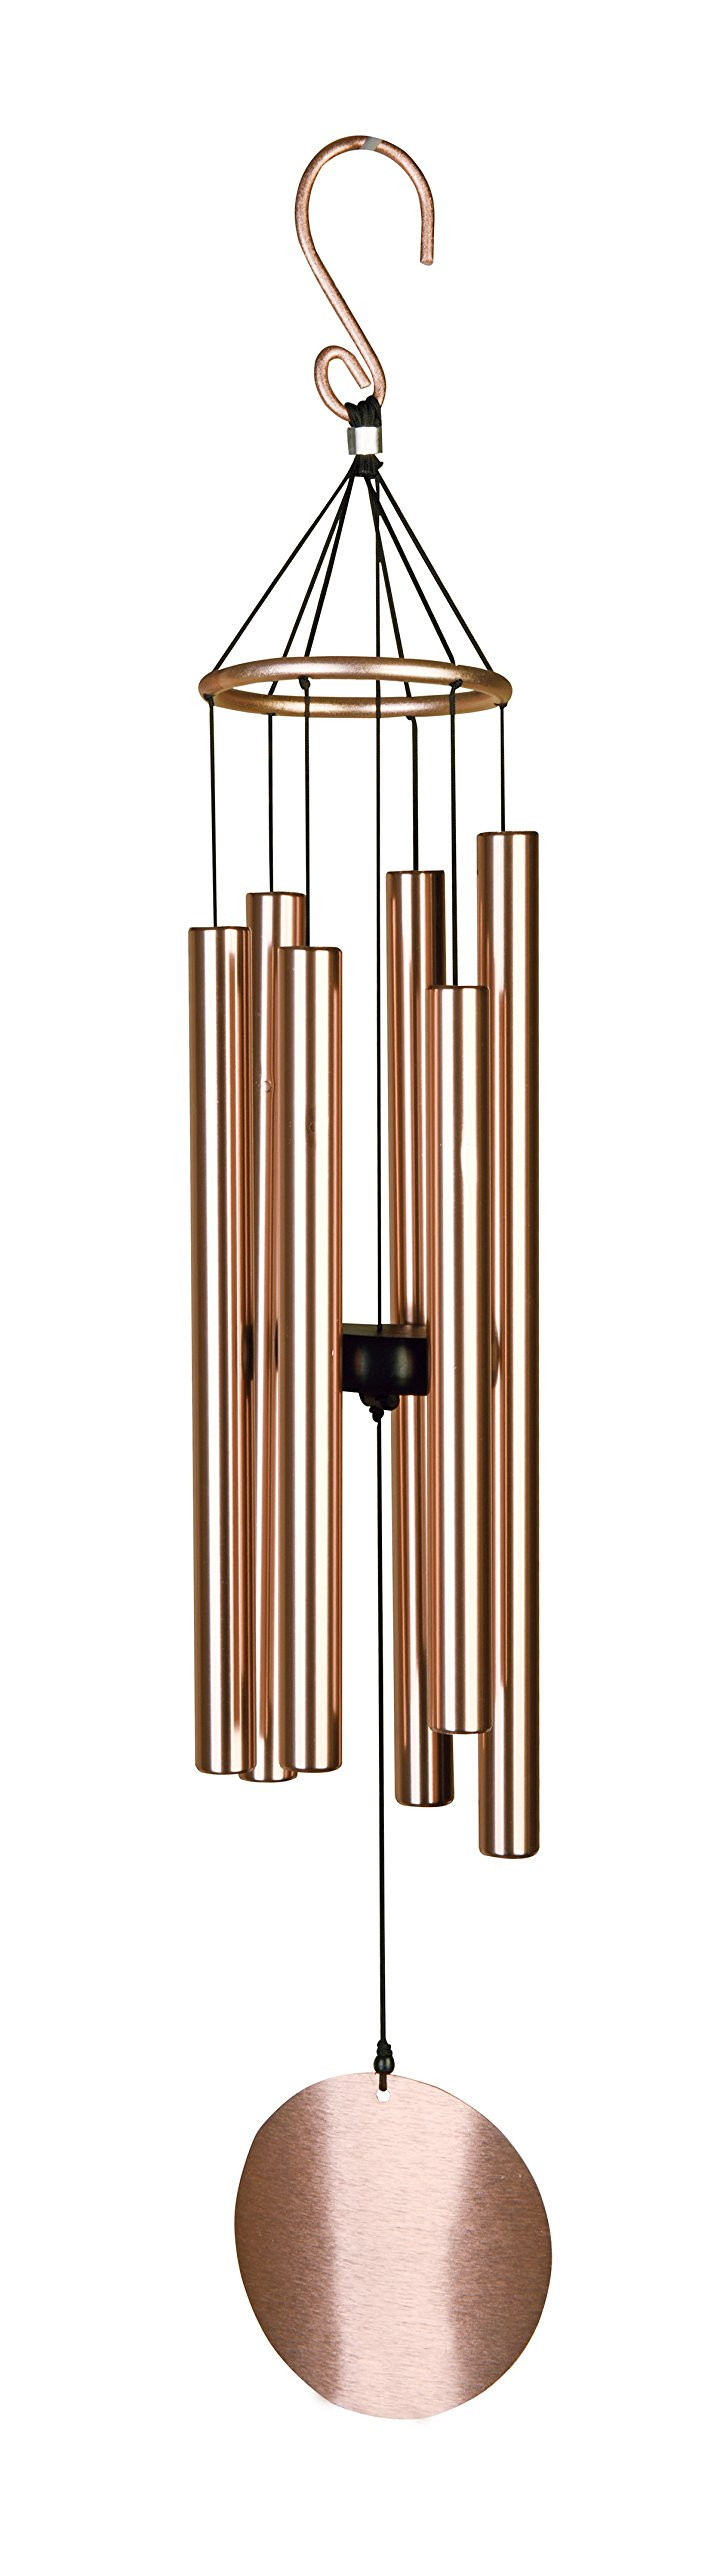 Pixpri Wind Chimes - for Outdoor Garden - 32'' Elegant Metal Design - Musical Tones (Rose- Gold,similar but not exactly the same tone of the forest green) by Pixpri